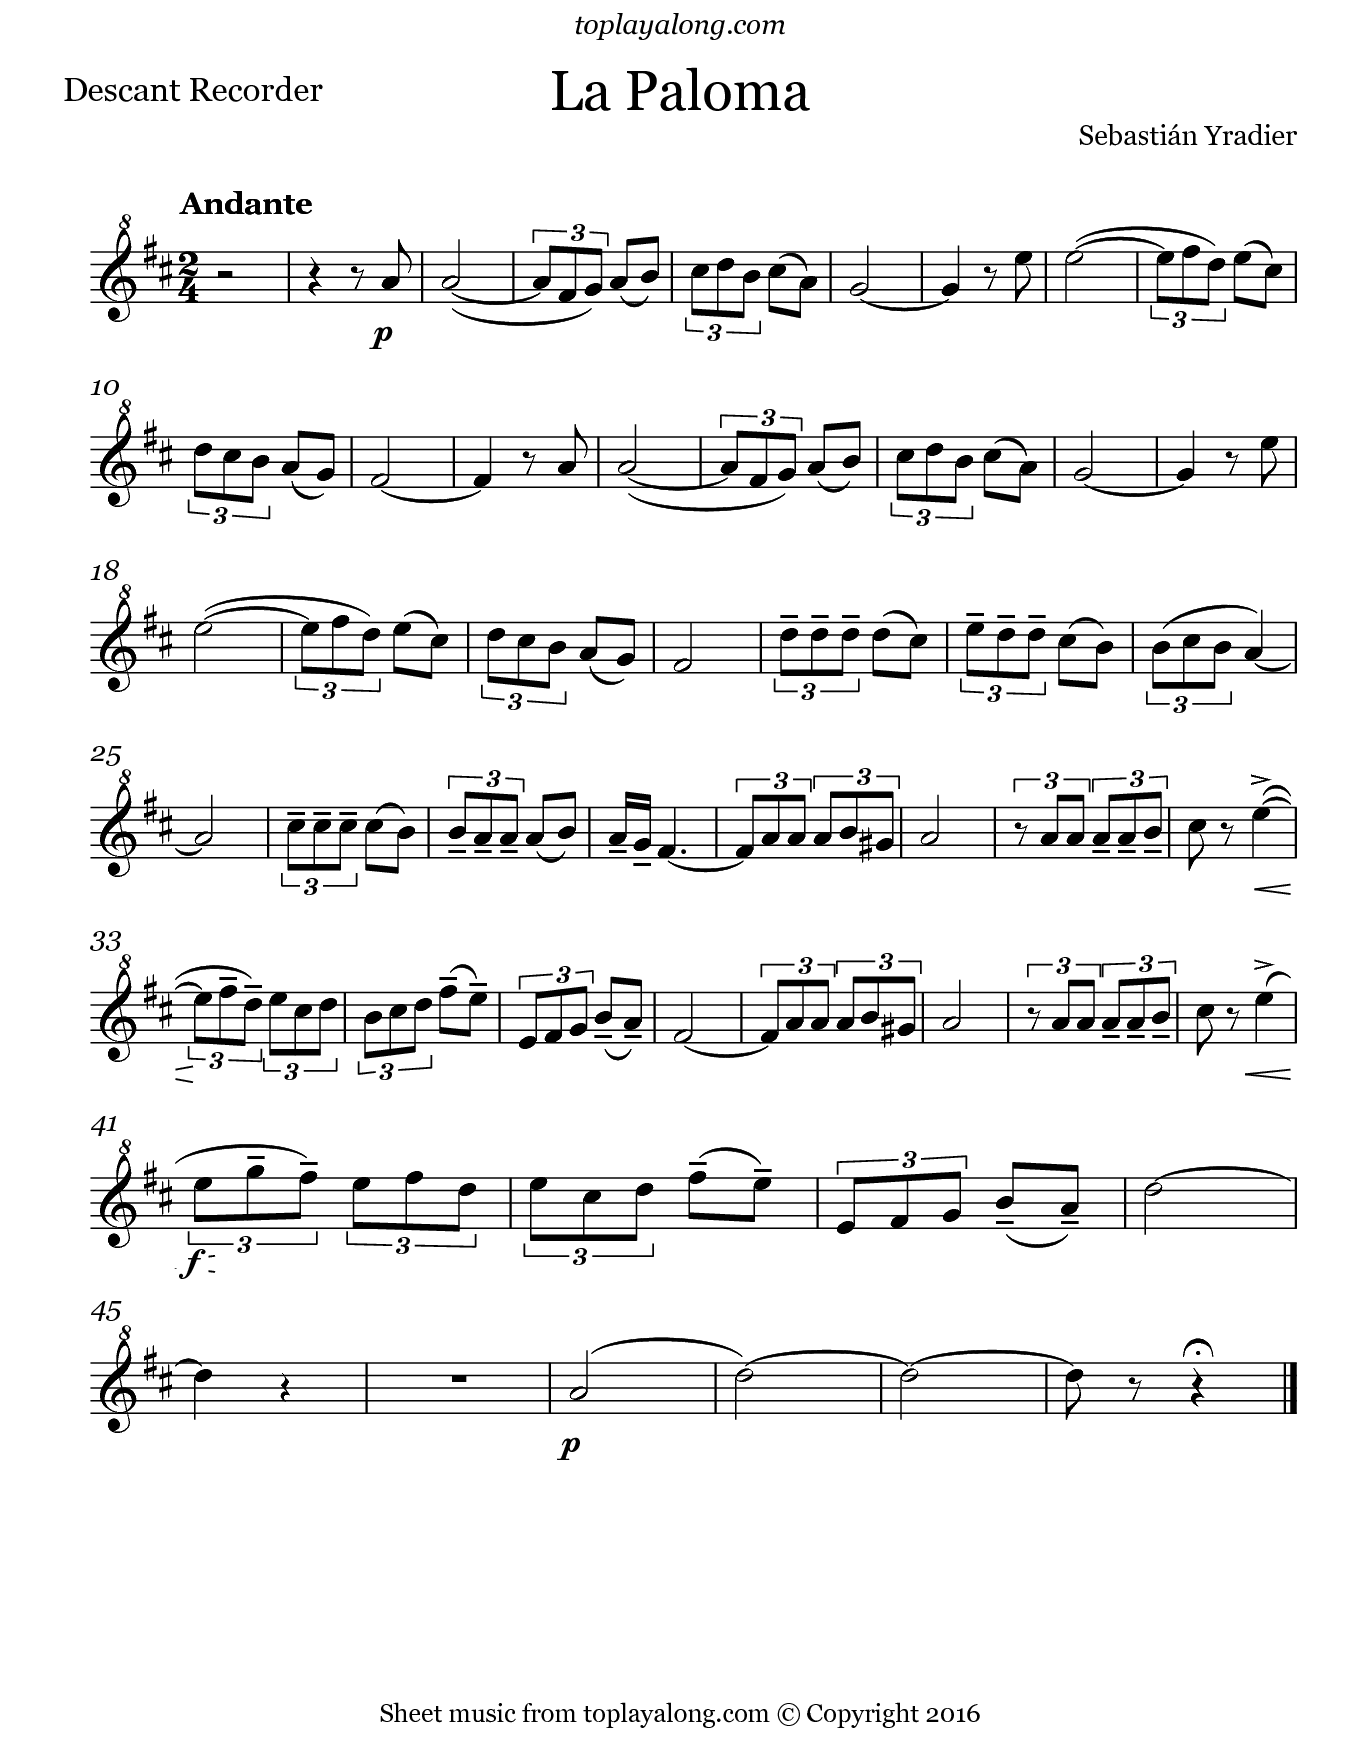 La Paloma by Yradier. Sheet music for Recorder, page 1.